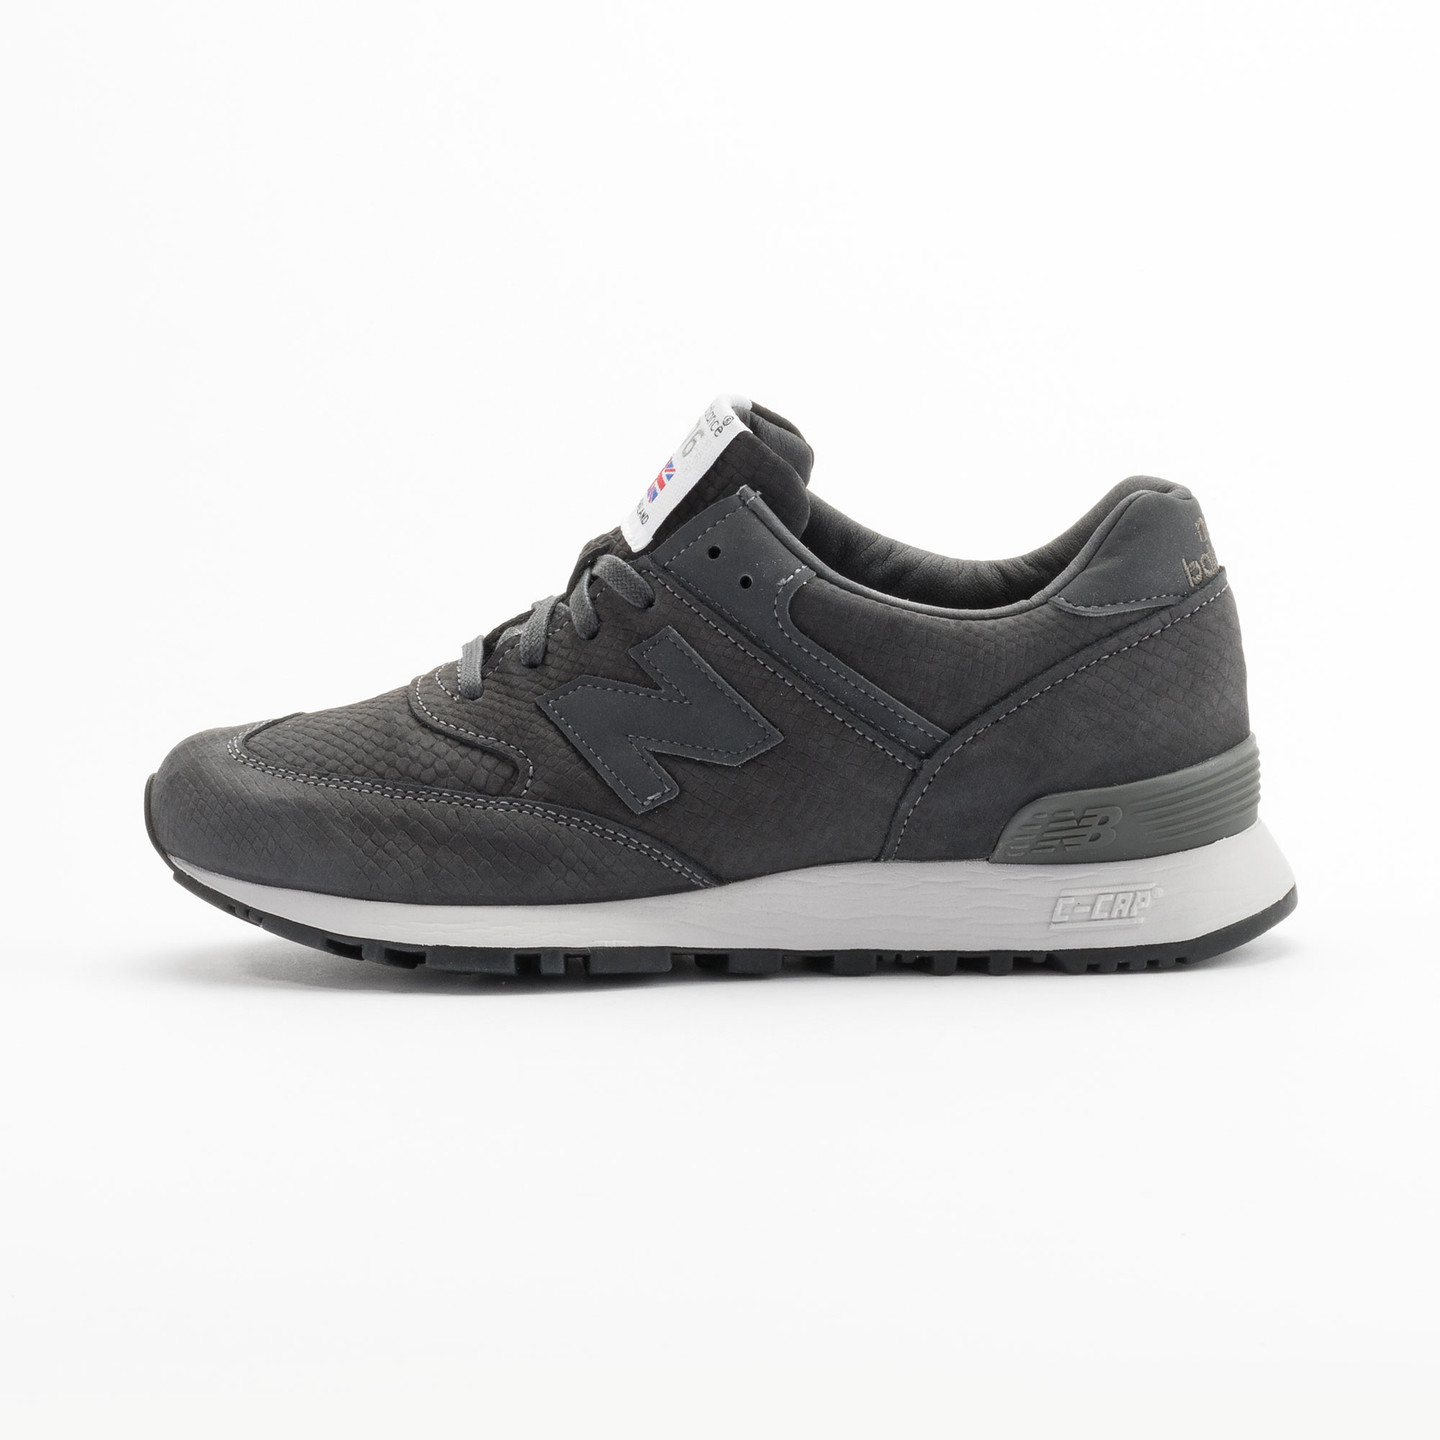 New Balance W576 NRG Made in England Dark Grey W576NRG-37